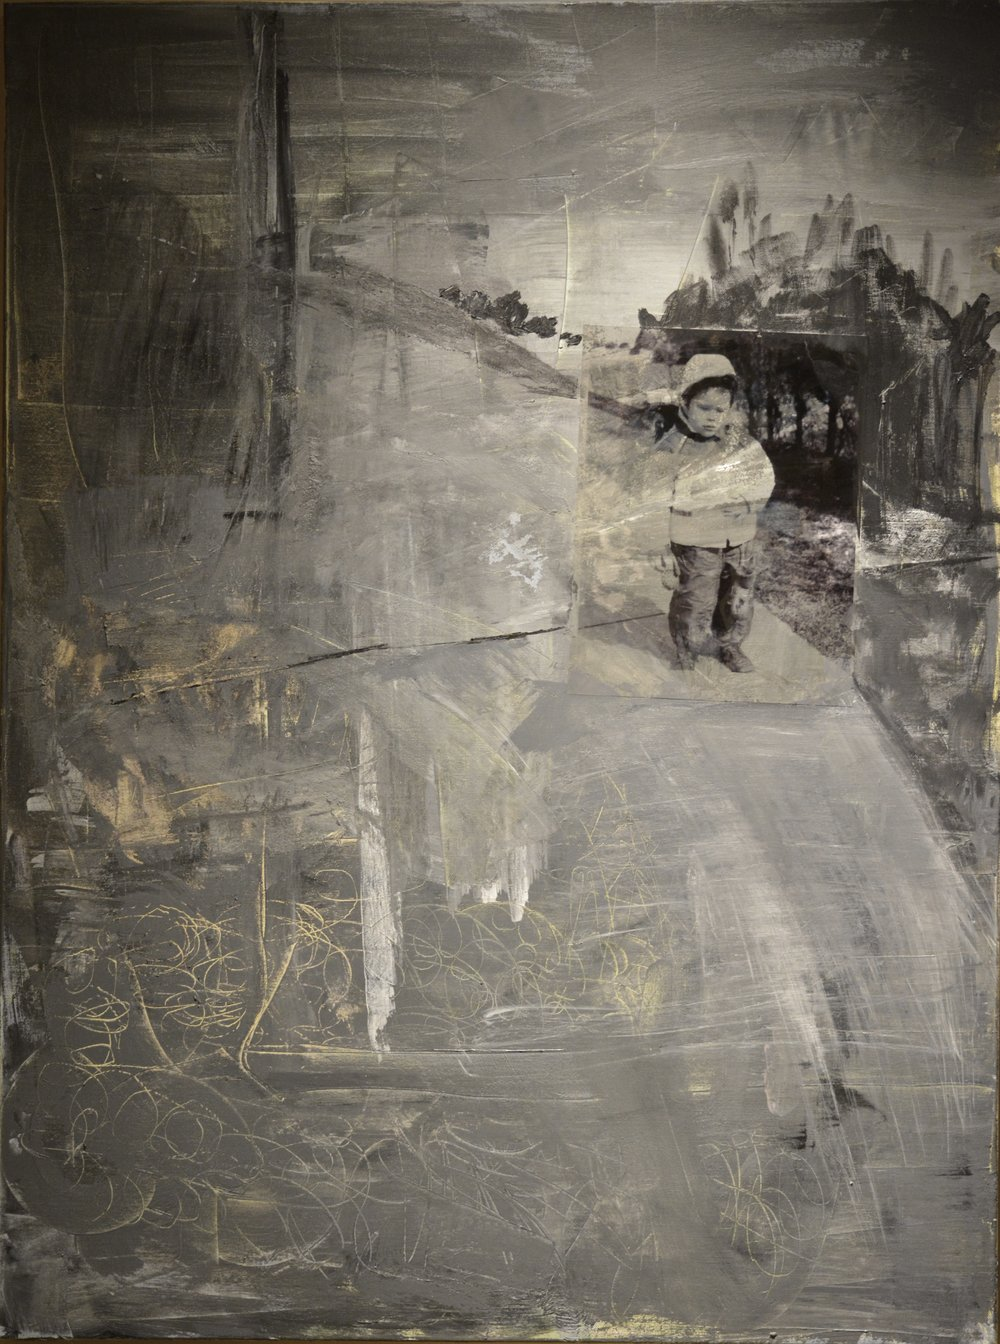 SECOND PLACE  - Lynne Lampl | Indelible Impressions | Mixed media (Acrylic, photo transparency & graphite)